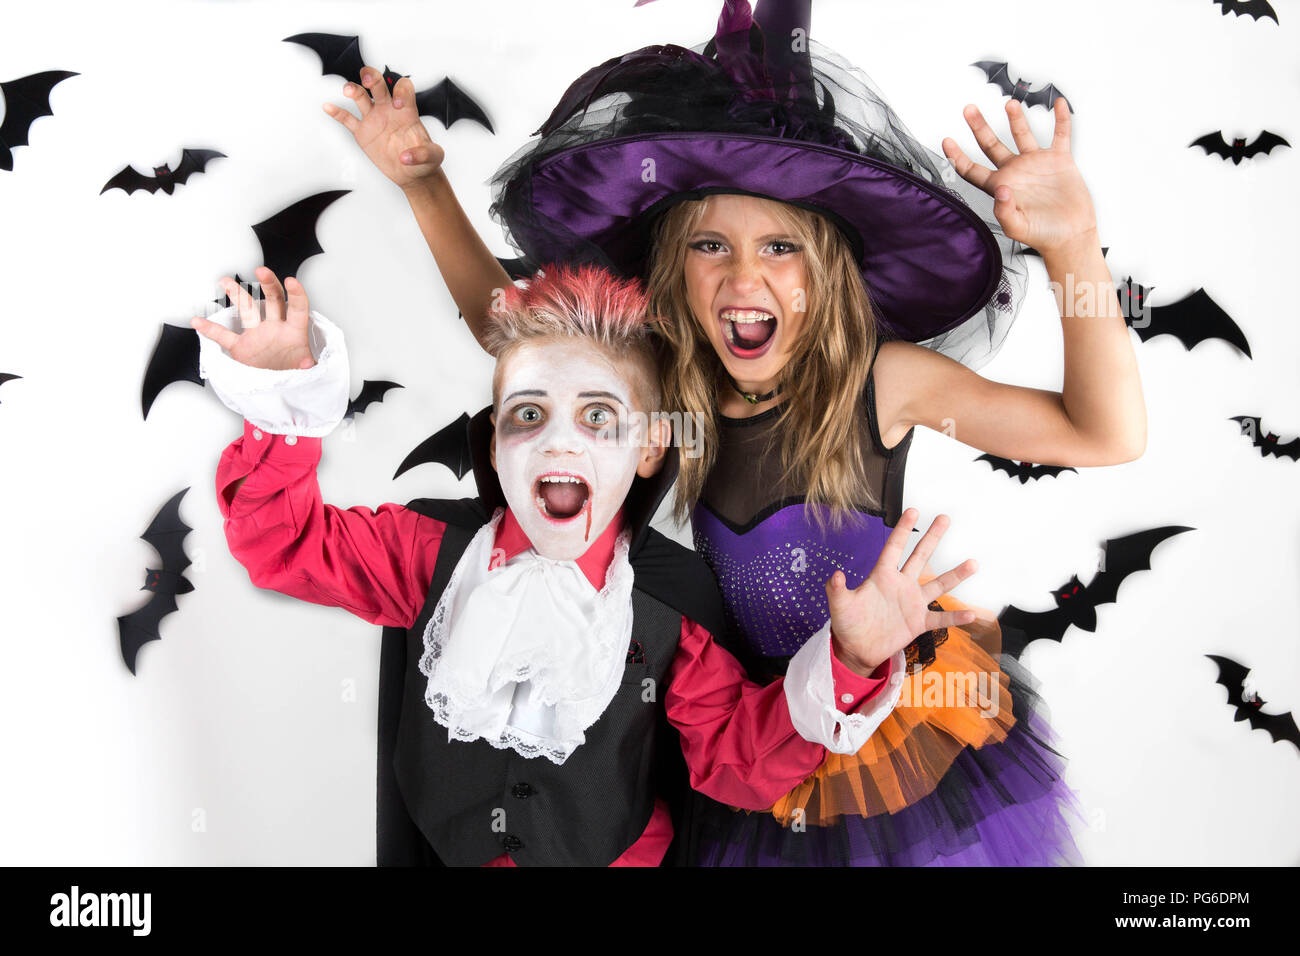 Halloween kids, Happy scary girl and boy dressed up in Halloween costumes of witch, sorcerer and vampire, Dracula for Halloween party or pumpkin patch Stock Photo